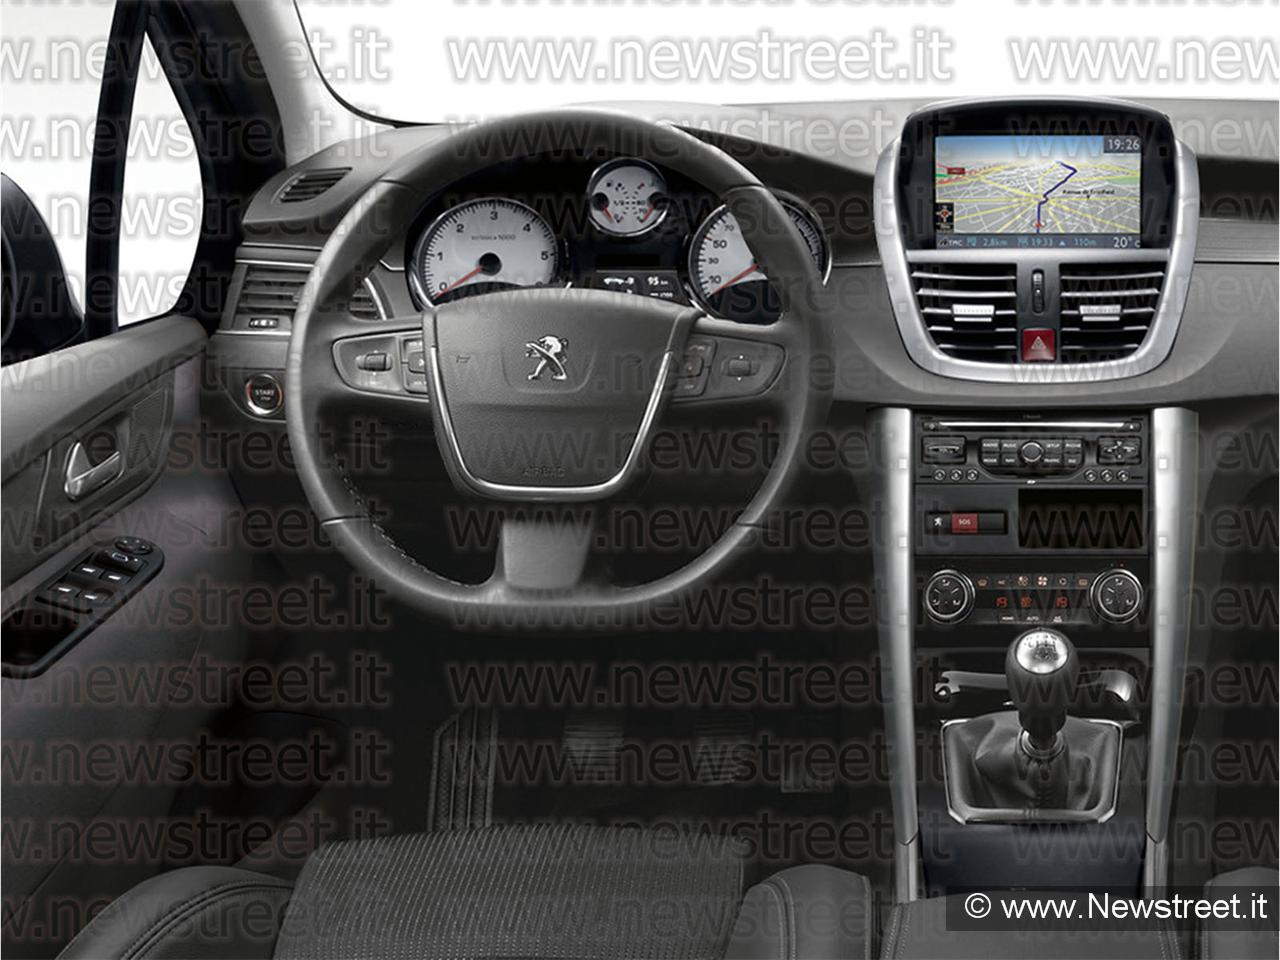 De nouveaux photomontages de la future peugeot 208 for Interieur peugeot 208